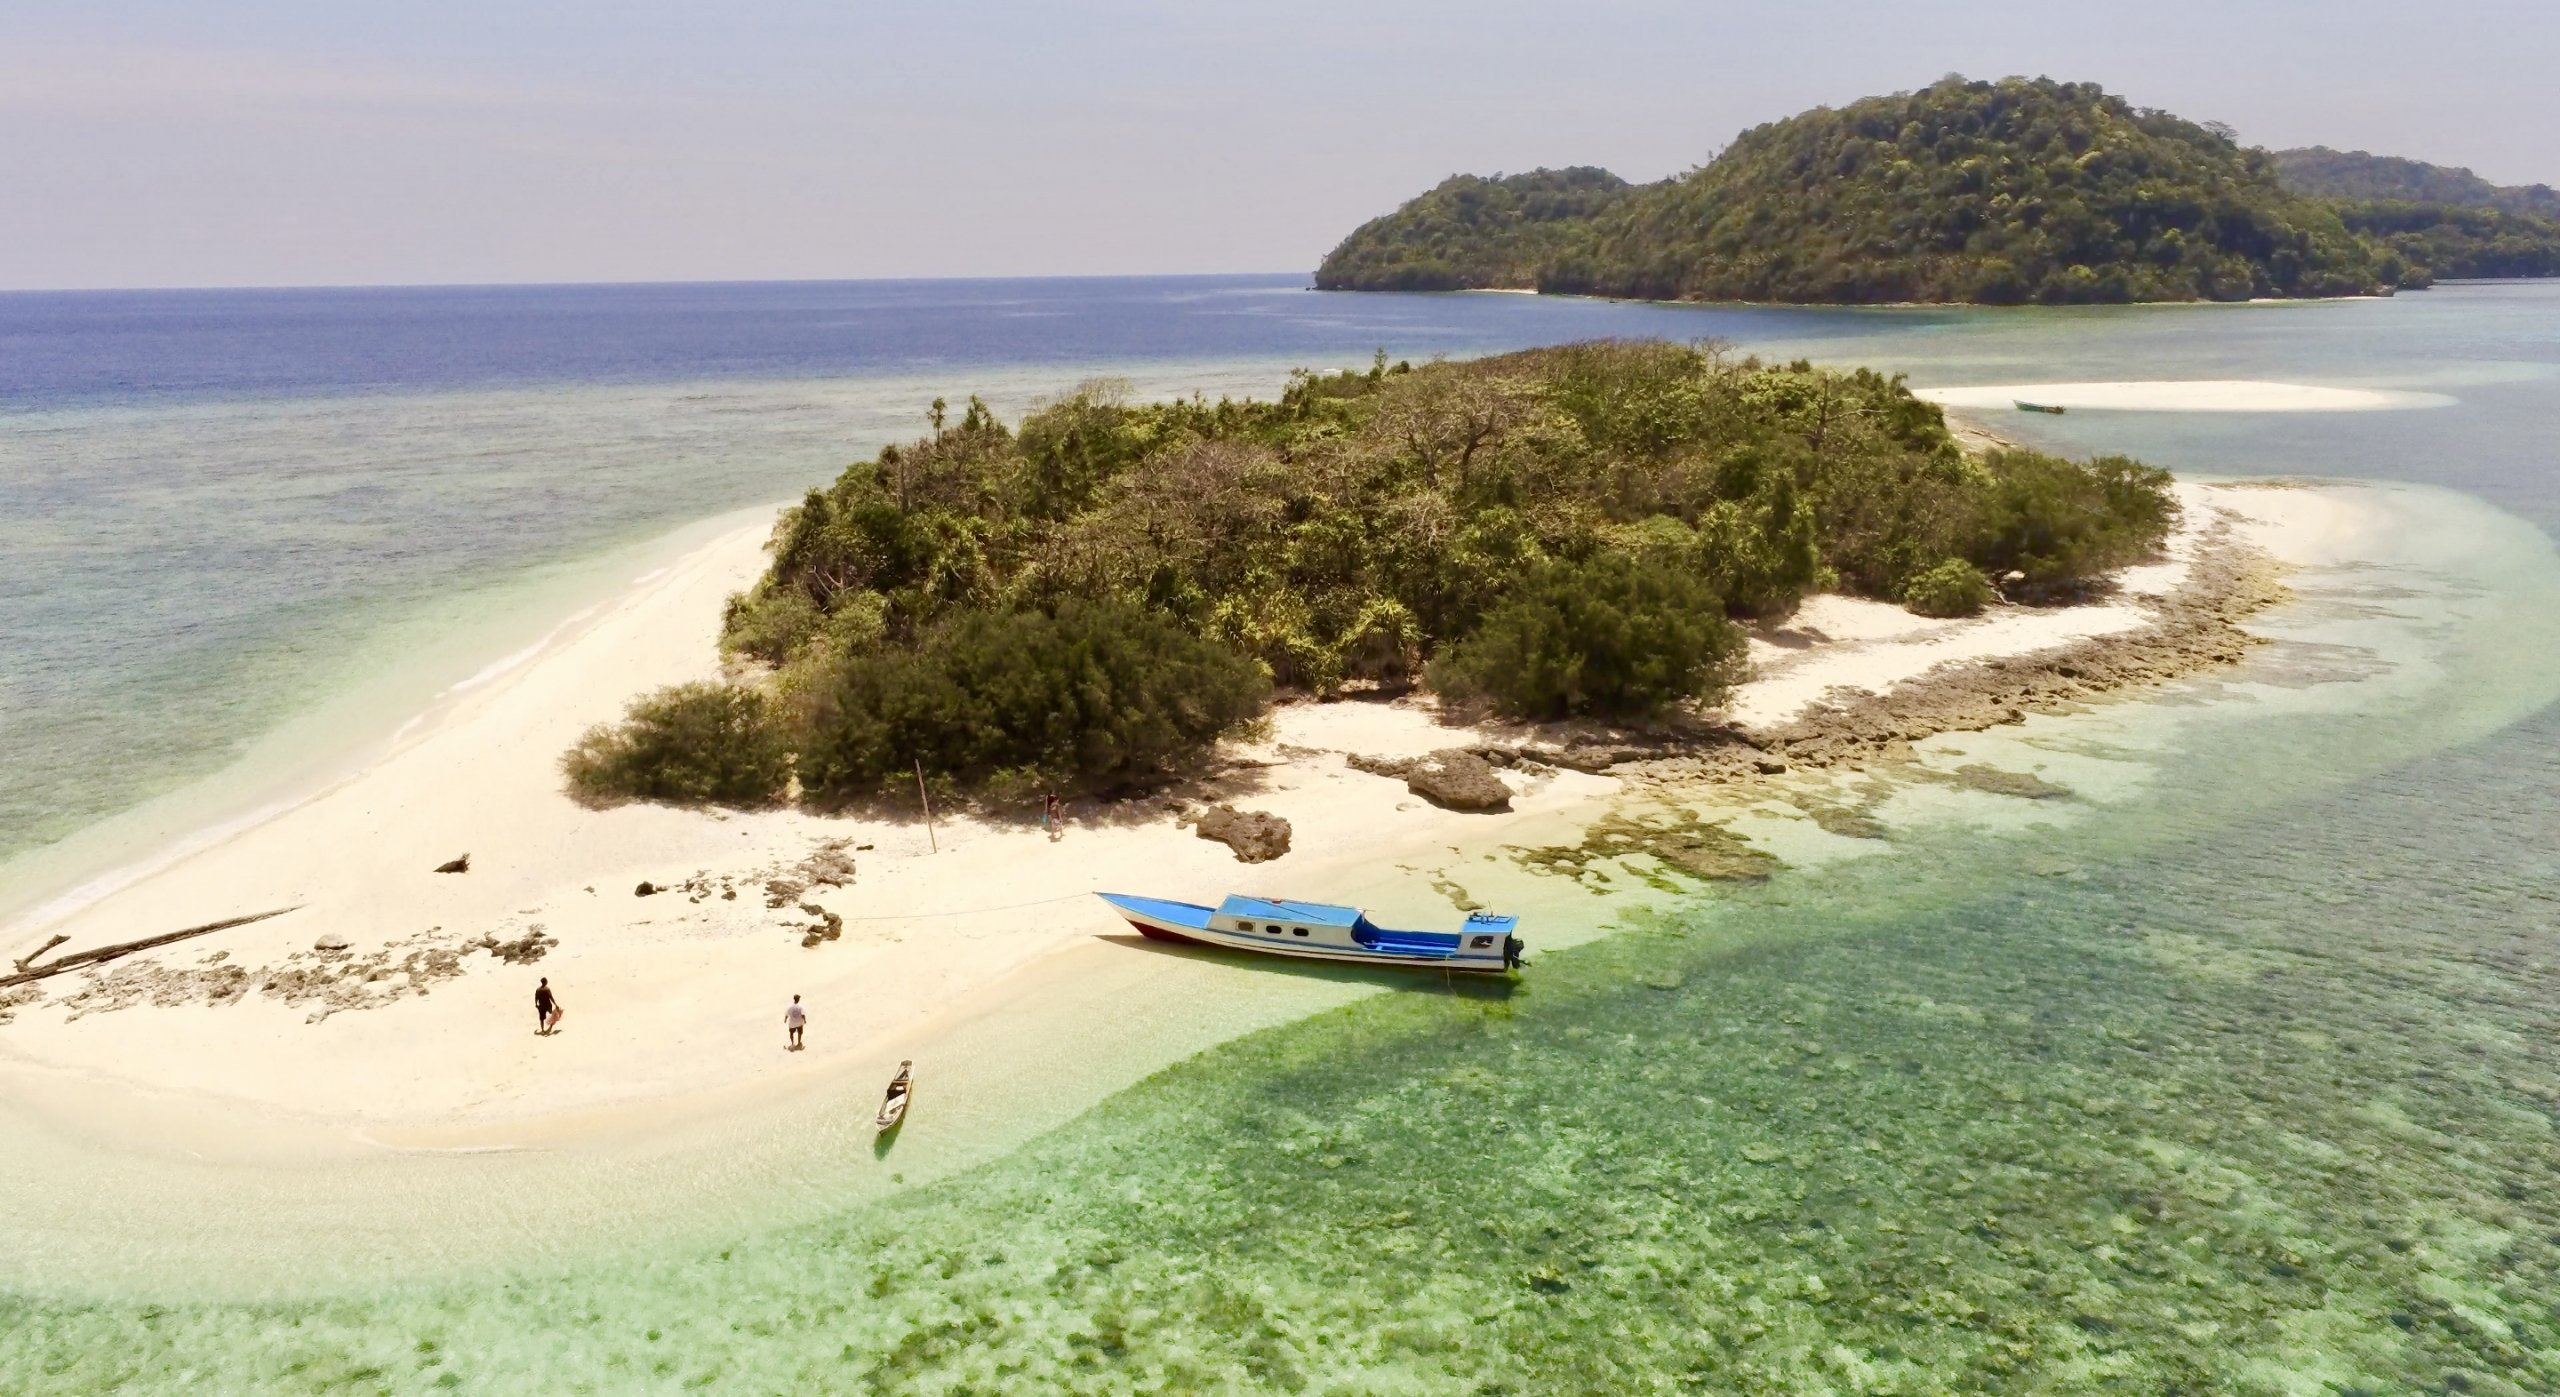 Neilaka, Banda Islands, Maluku, Indonesia